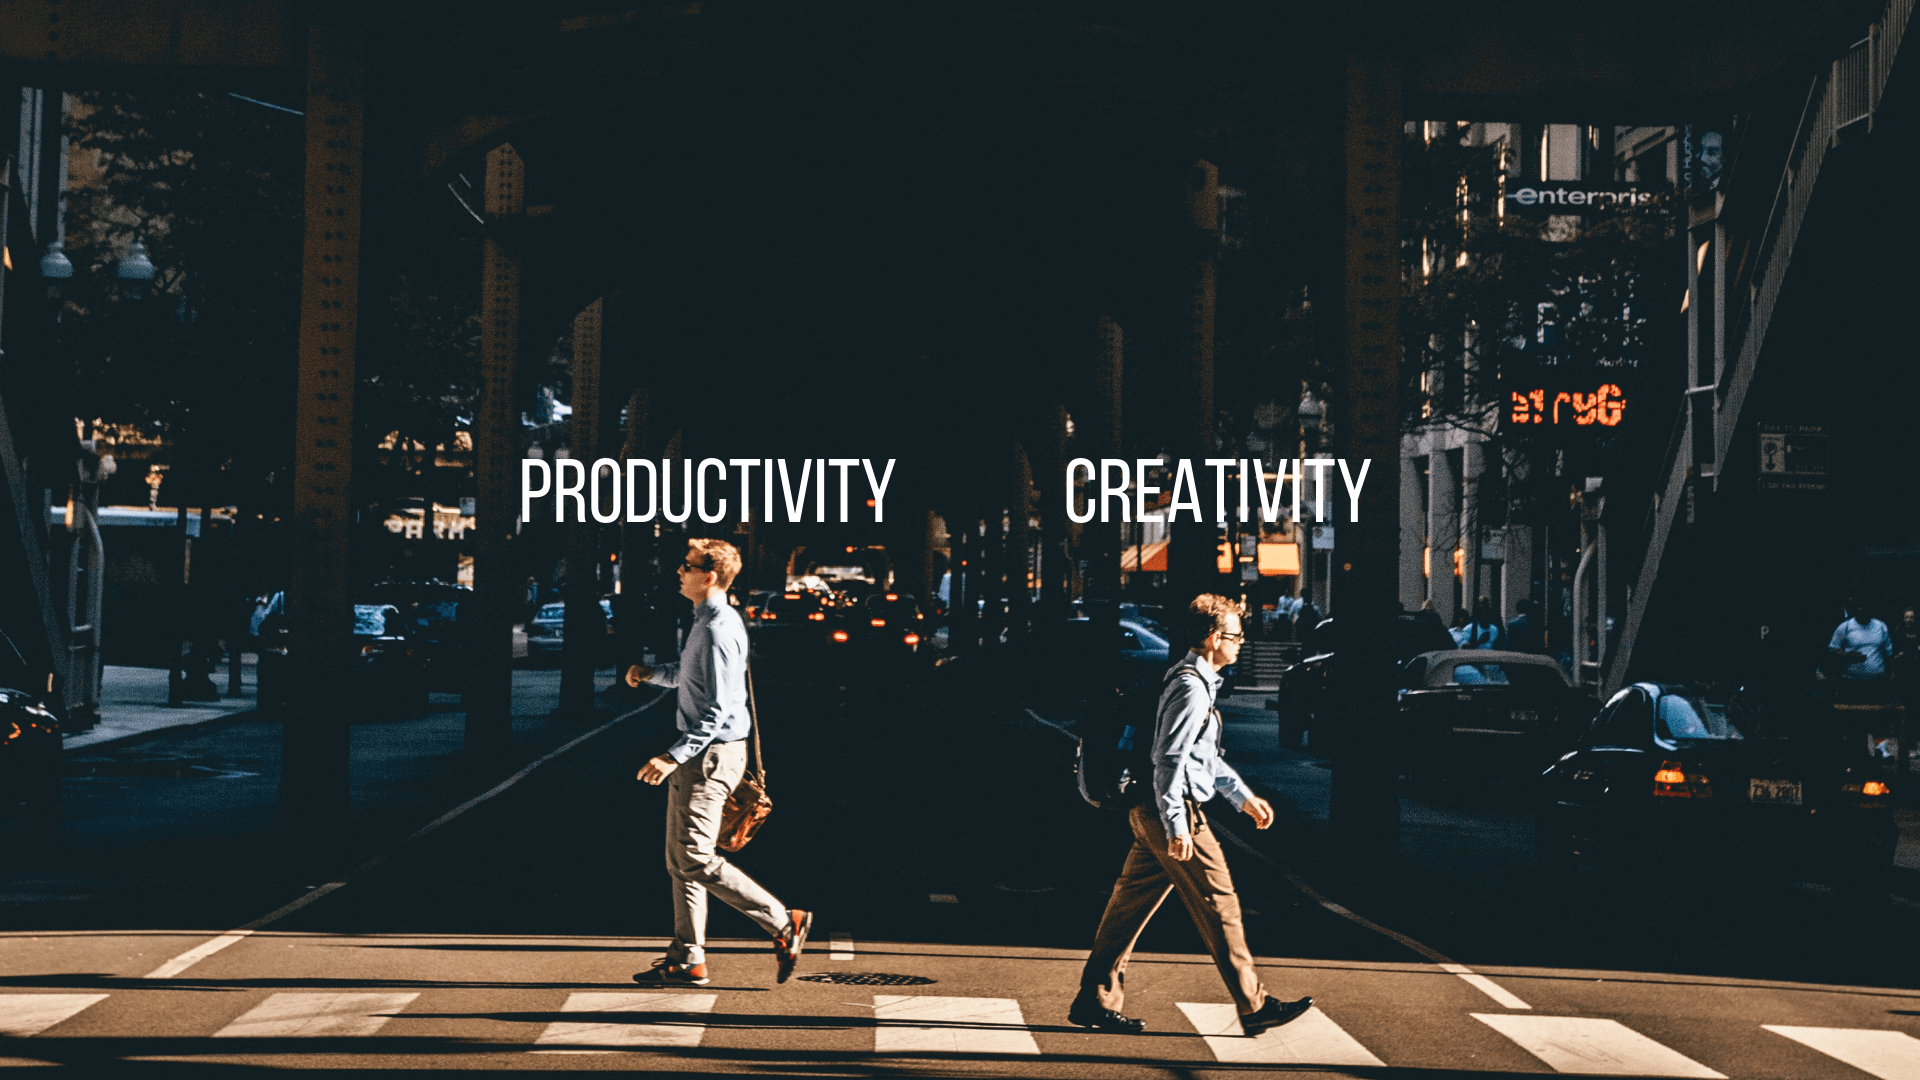 People believe that productivity and creativity are fundamentally different.